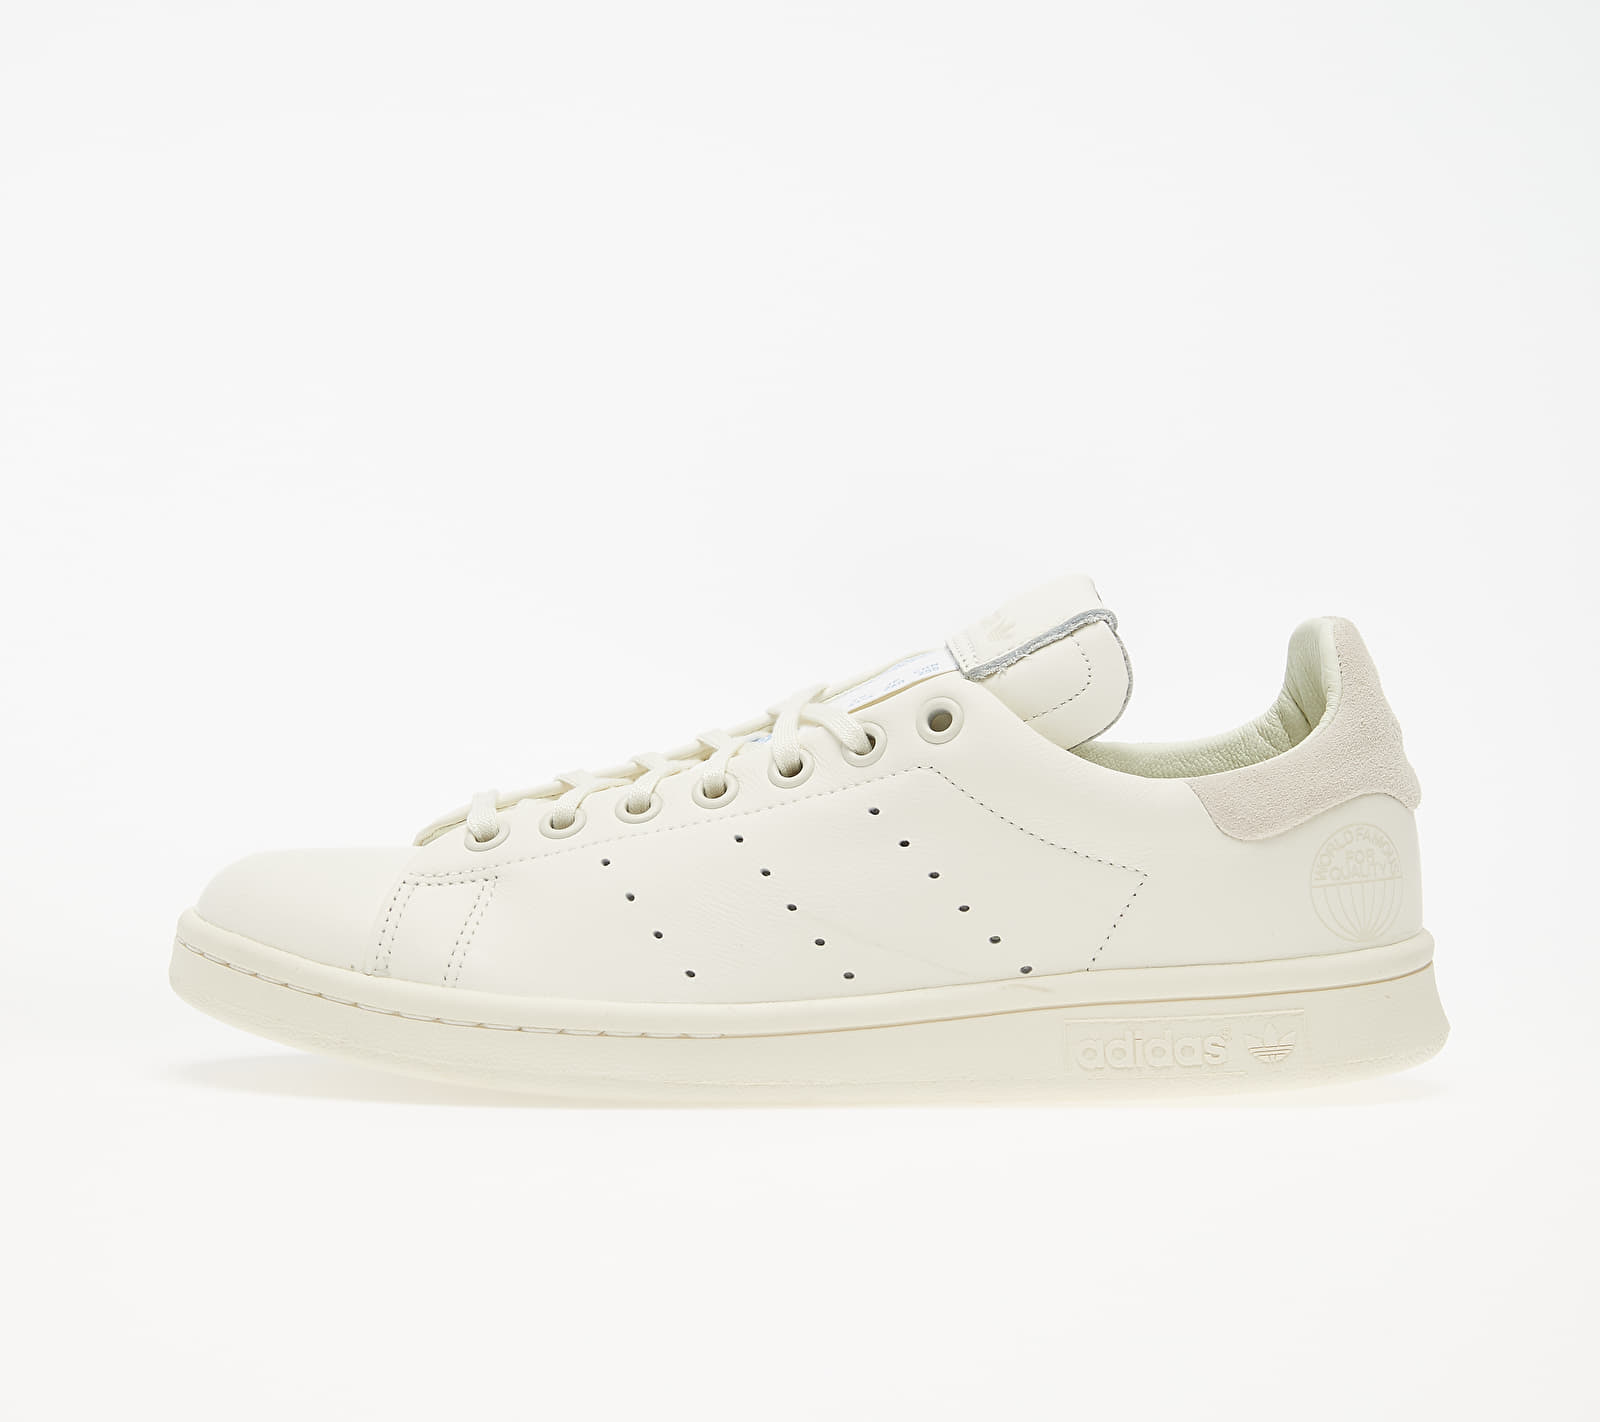 adidas Stan Smith Recon Off White/ Off White/ Off White EUR 42 2/3